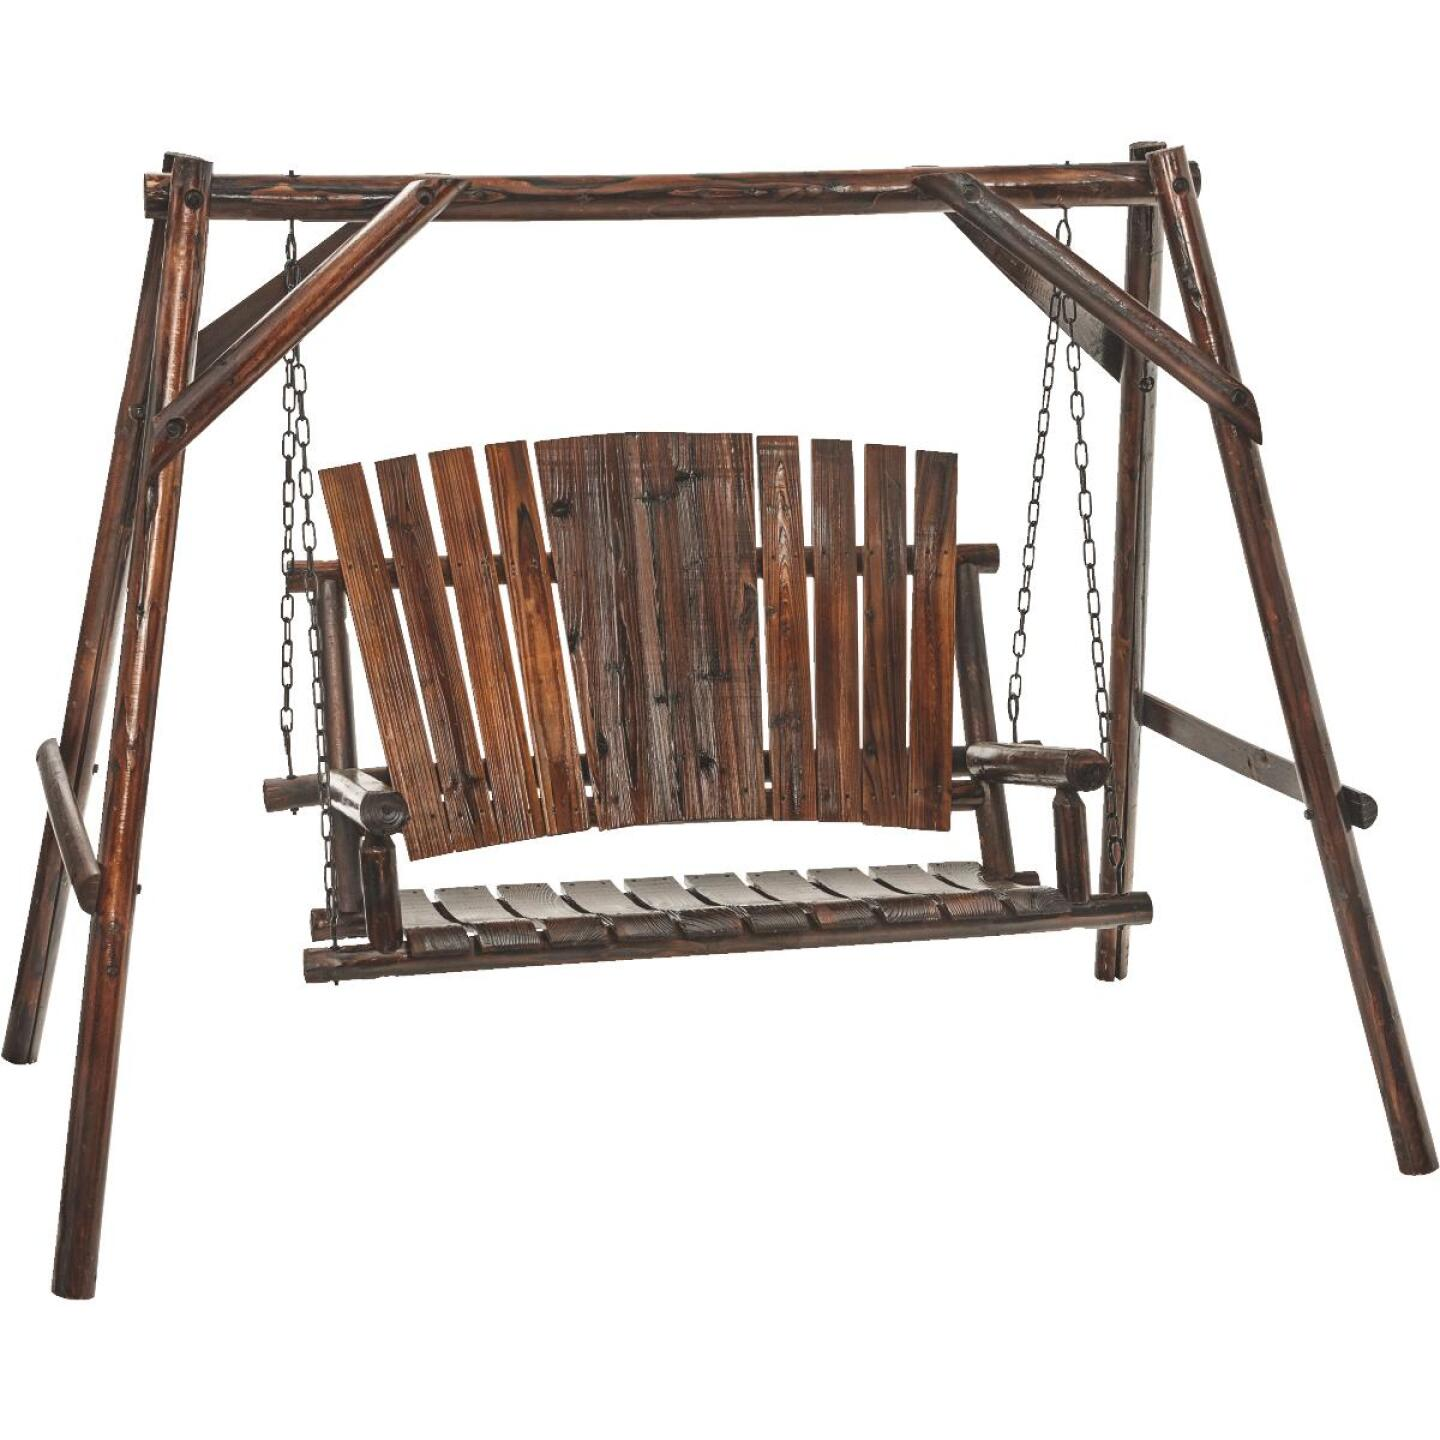 Char-Log 2-Person 90 In. W. x 67.5 In. H. x 50 In. D. Charred Wood Patio Swing Image 1